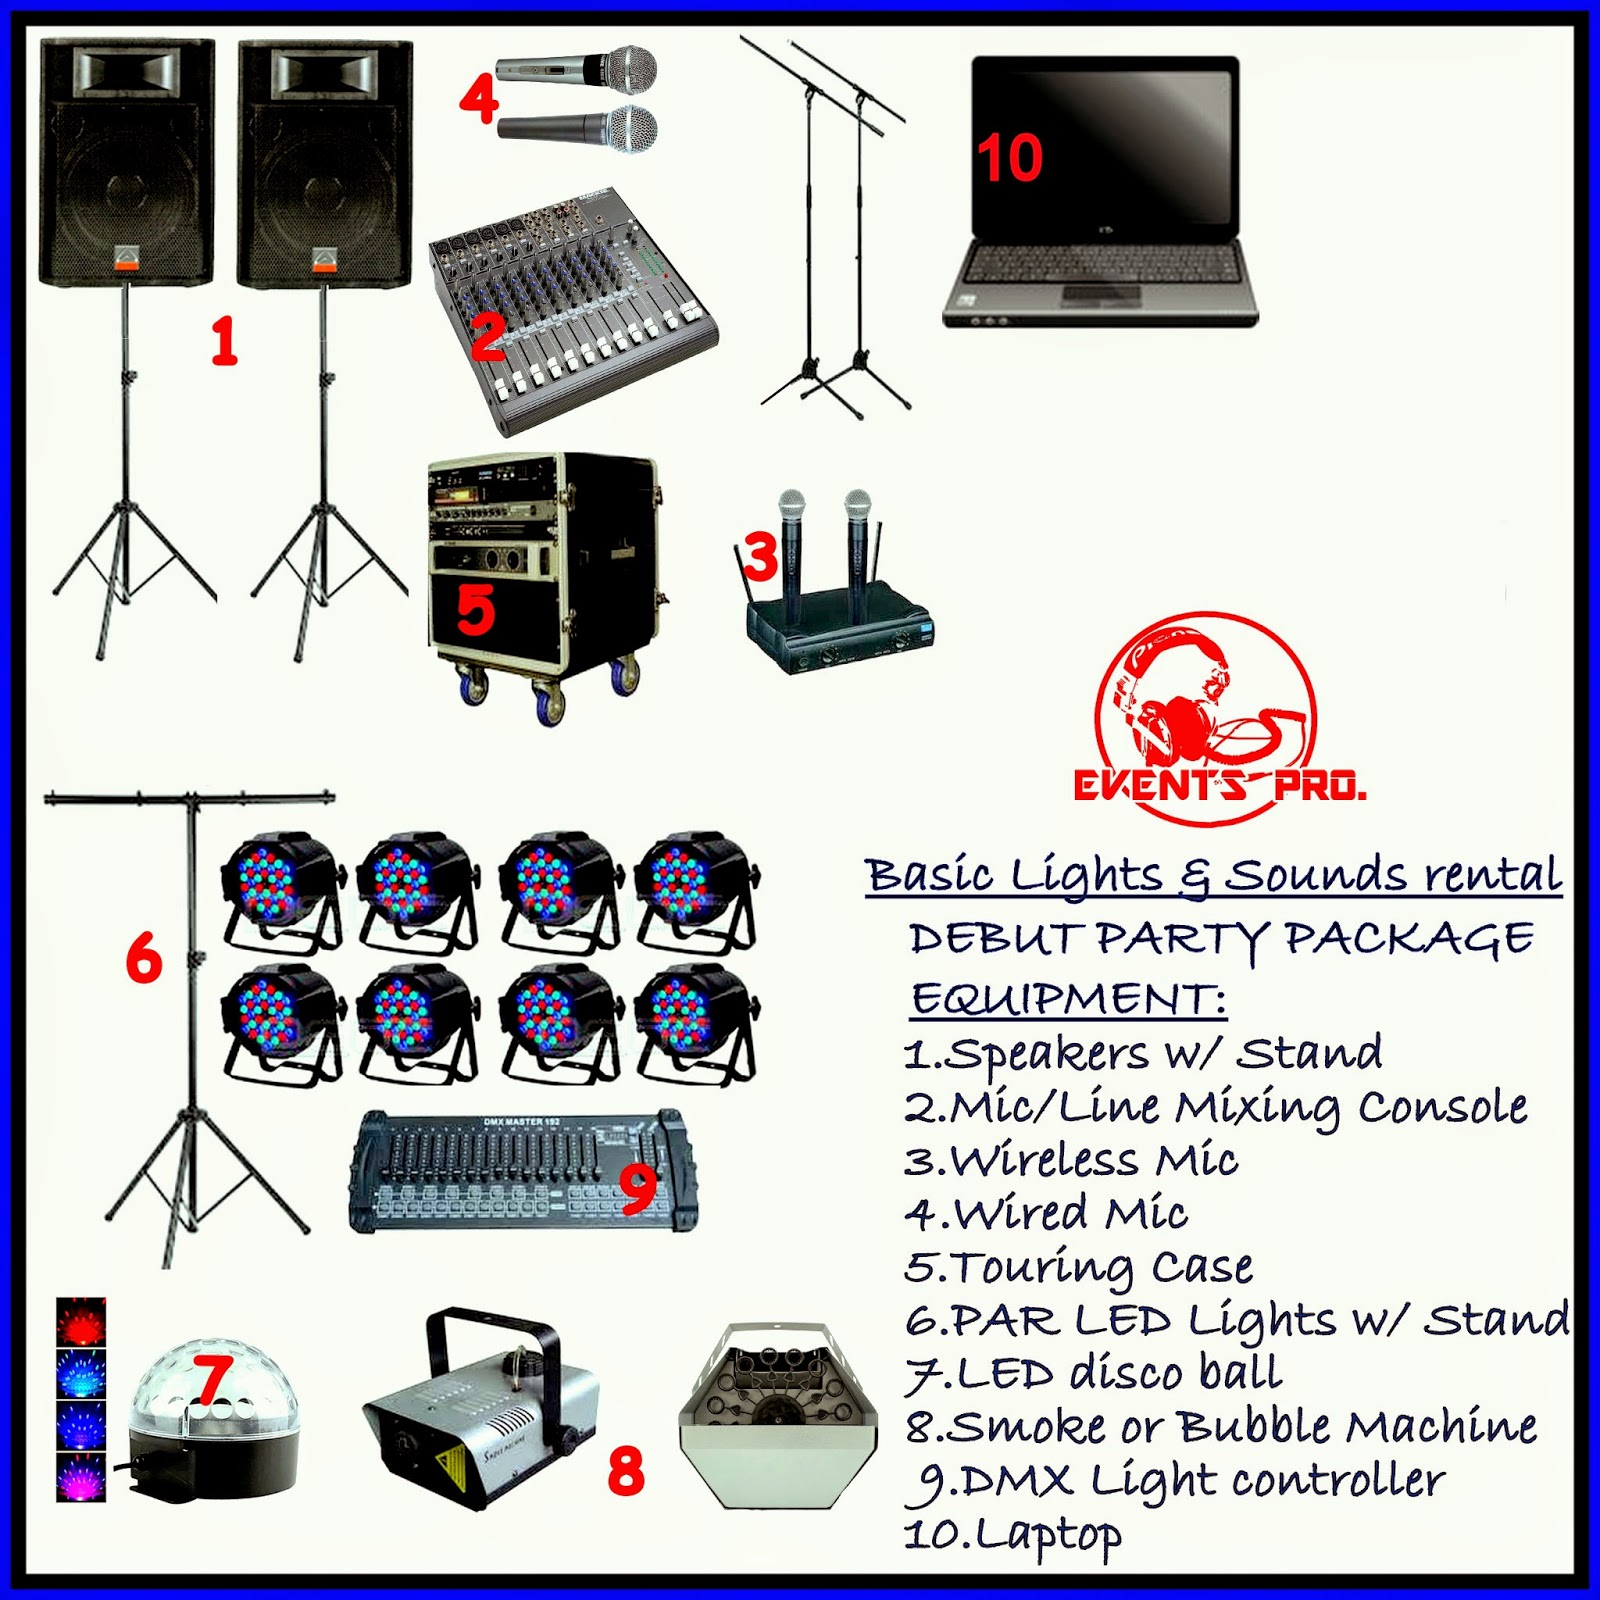 Lights and Sound System Rental Manila, offers affordable